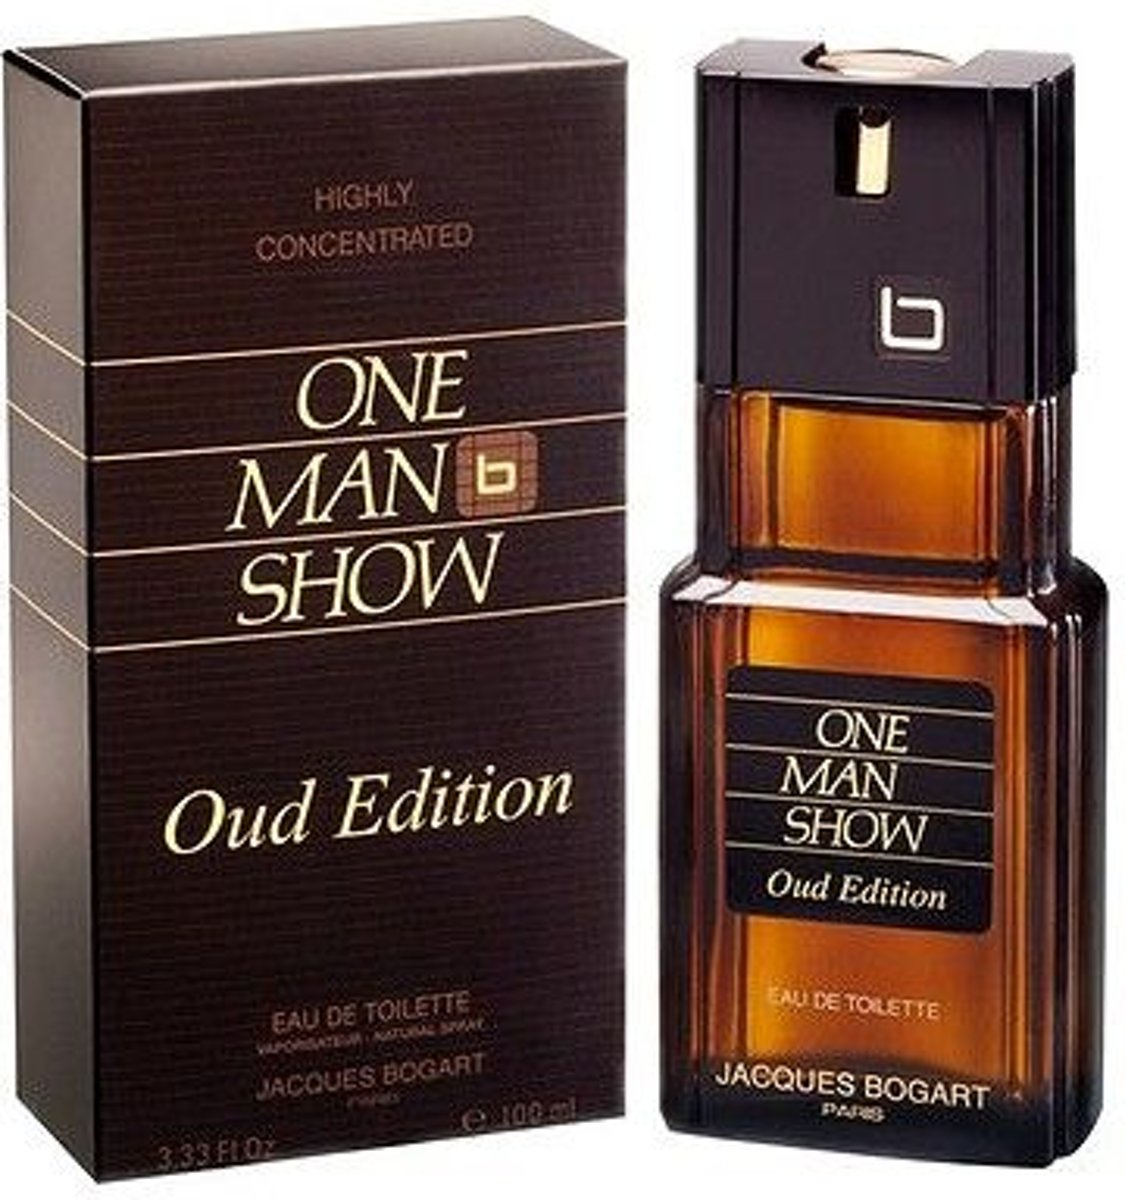 Jacques Bogart One Man Show Oud Edition eau de toilette spray 100 ml